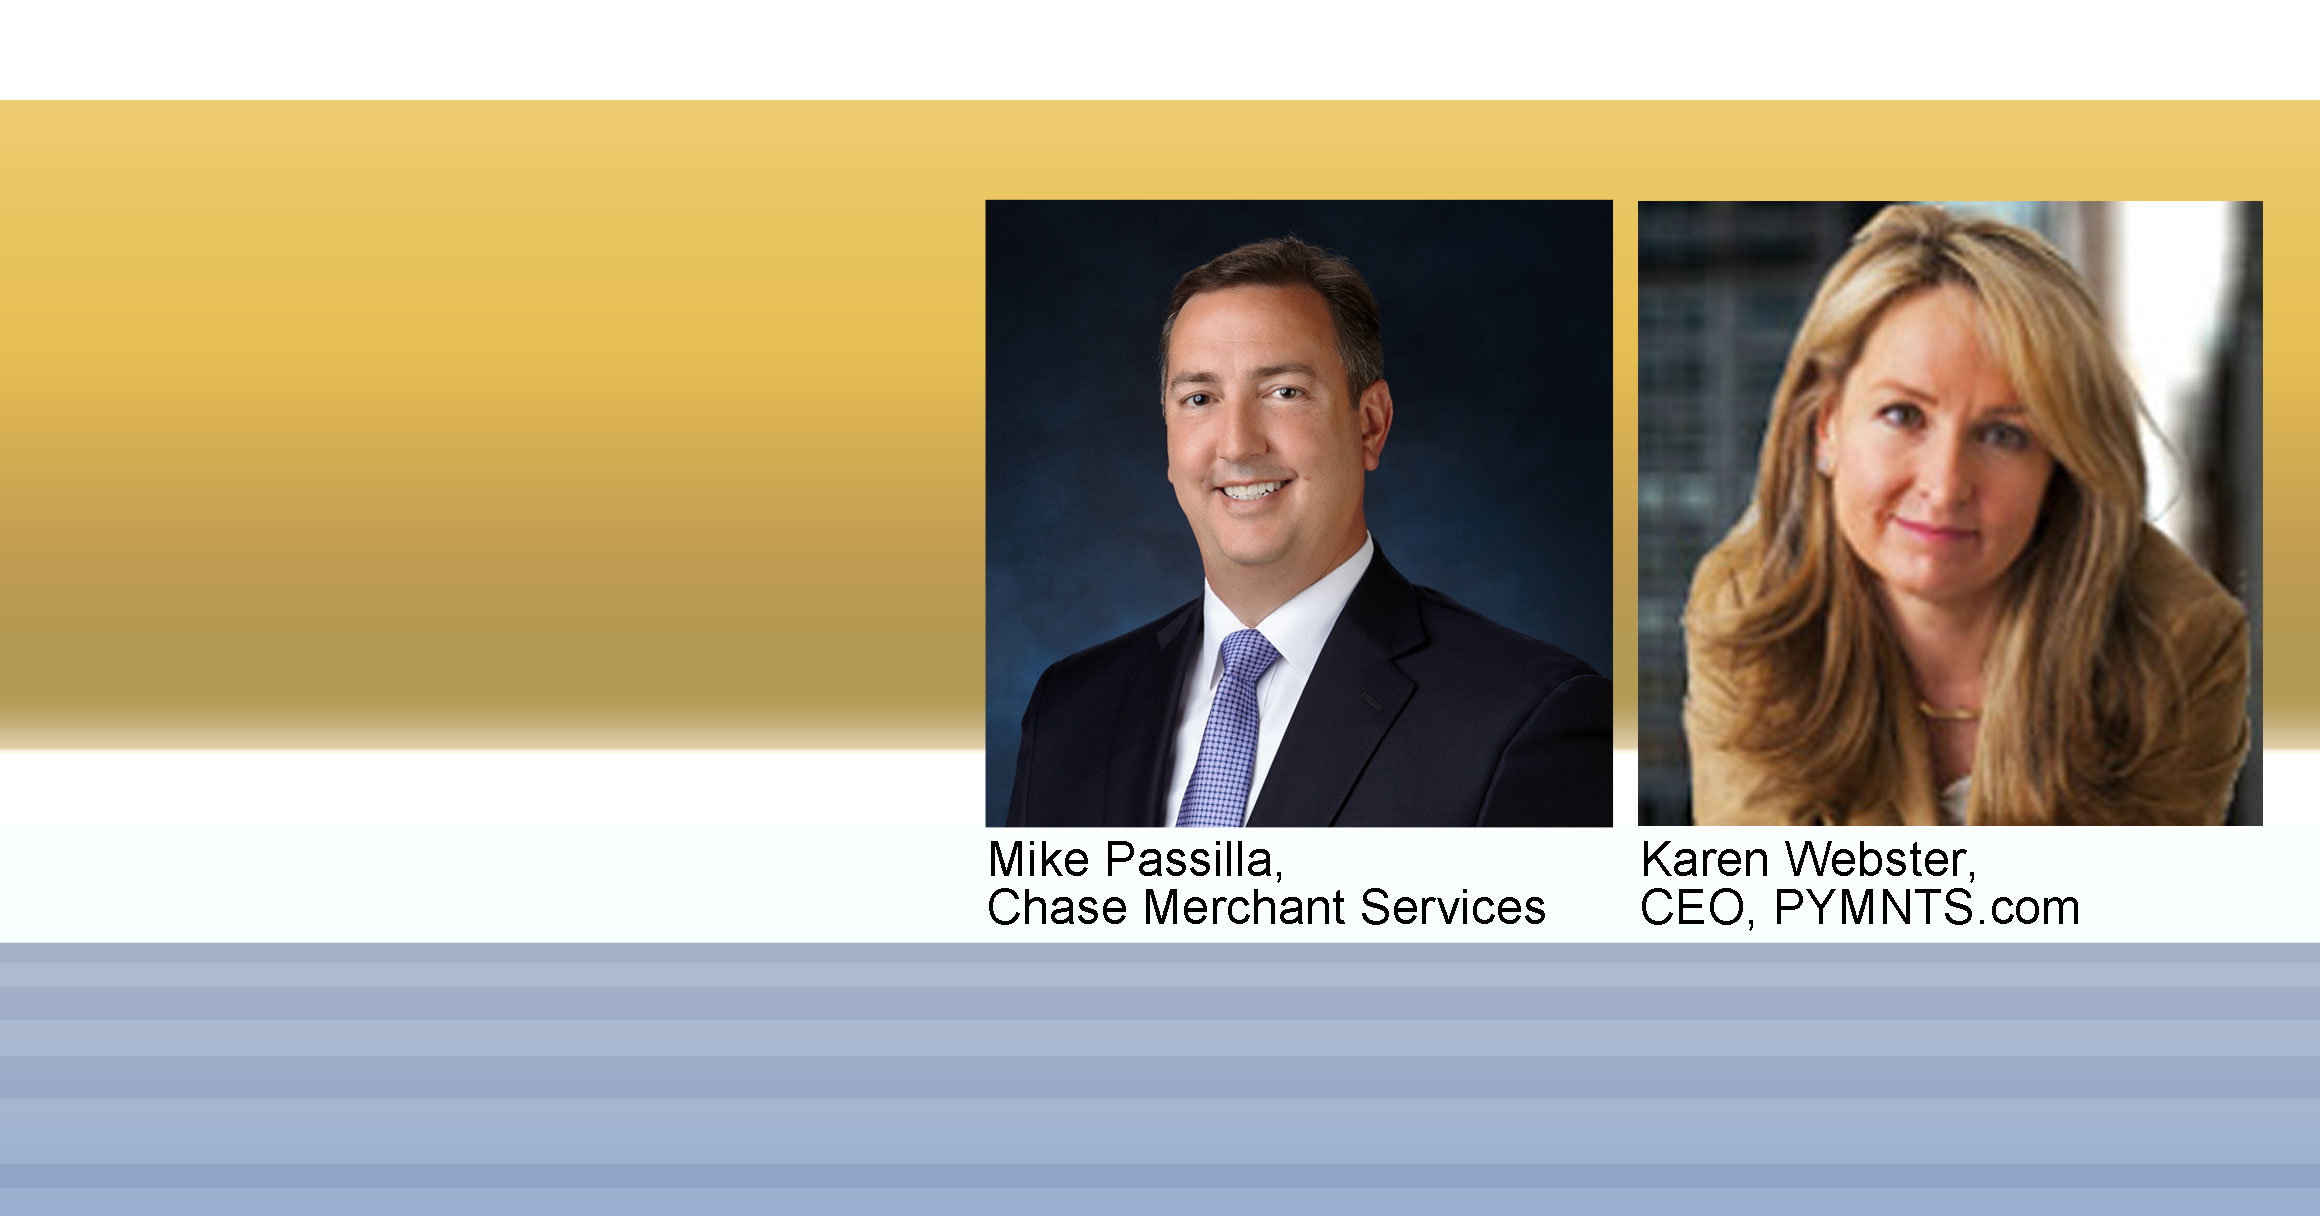 Chase Merchant Services